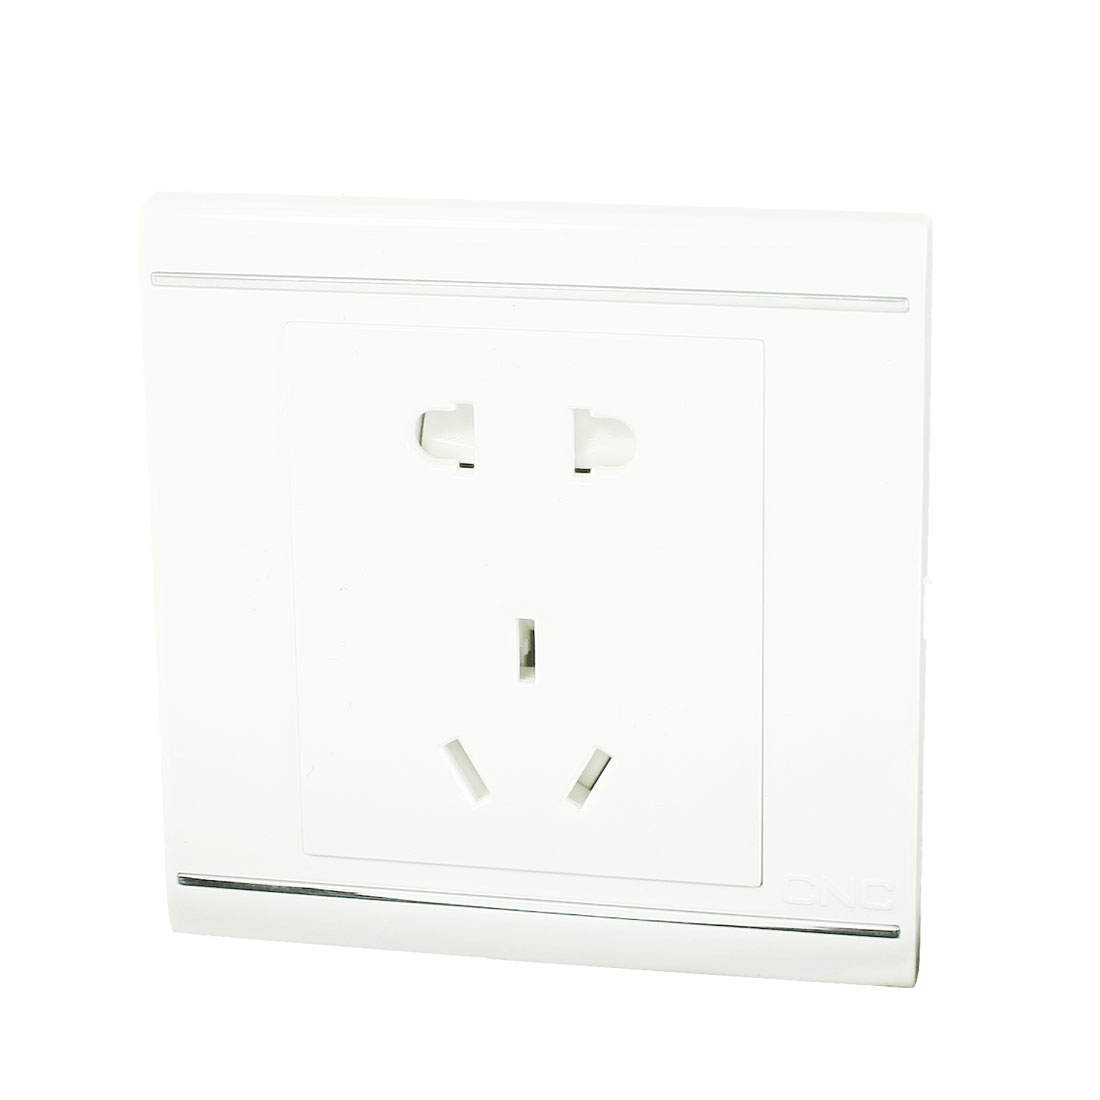 3 Pin AU 2 Pin US/ EU 250VAC 10A Wall Mounted Outlet Socket Plate White